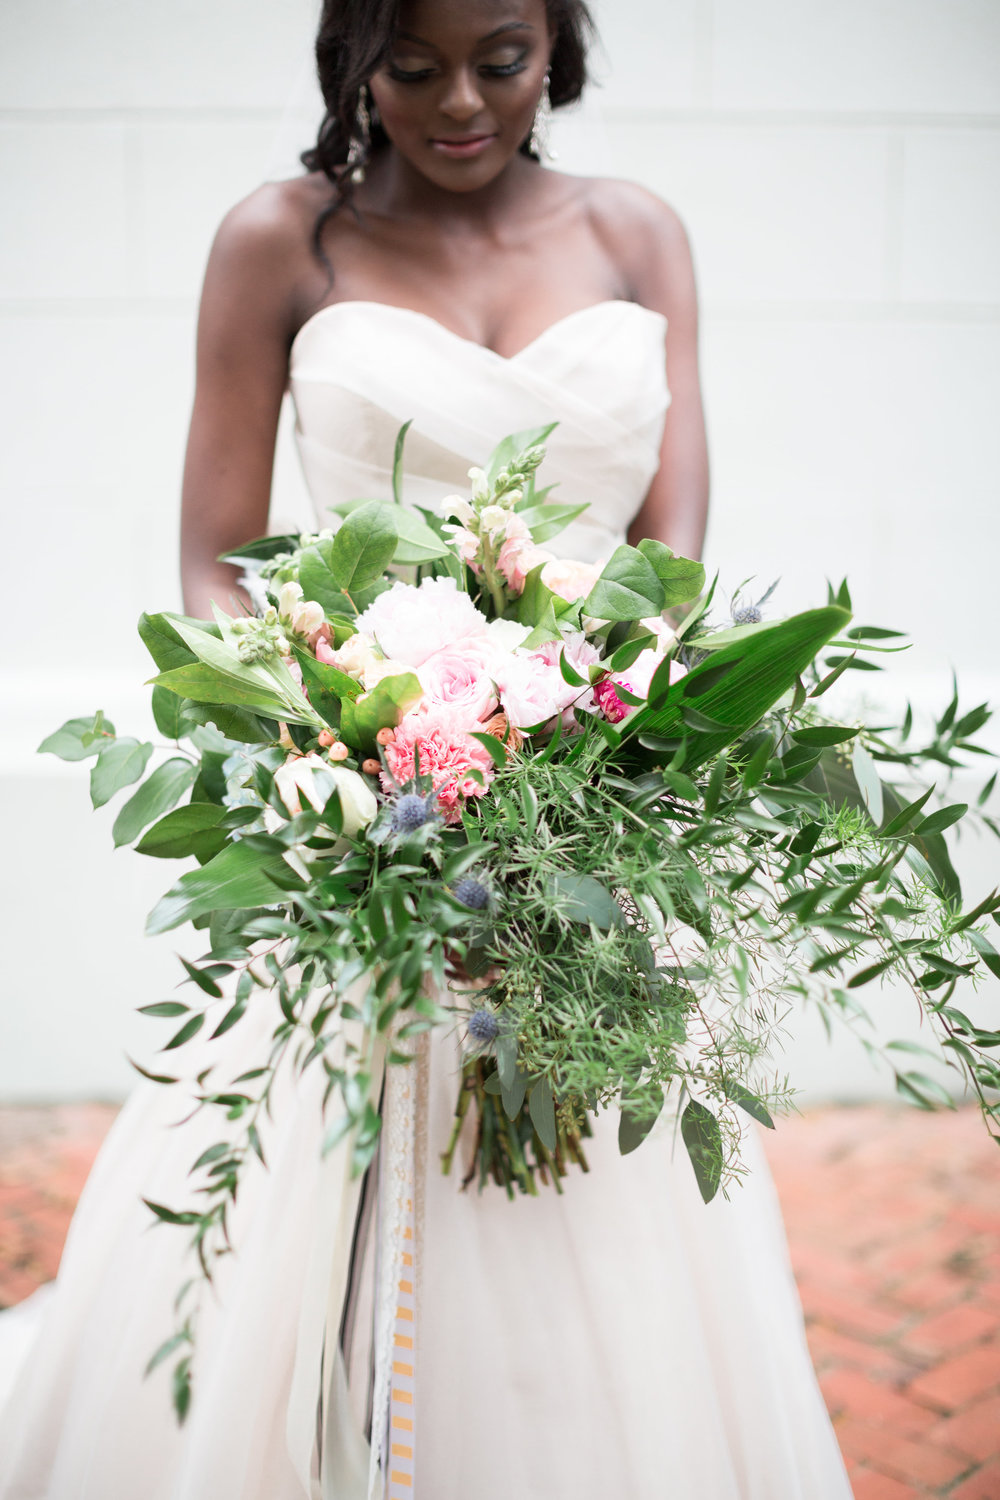 larger-than-life-events-lyndi-j-photography-blush-by-hayley-paige-blush-wedding-dress-blush-mermaid-coleman-hall-wedding-savannah-bridal-boutique-savannah-wedding-dresses-savannah-wedidng-gowns-savannah-event-planner-savannah-bridal-shop-8.jpg